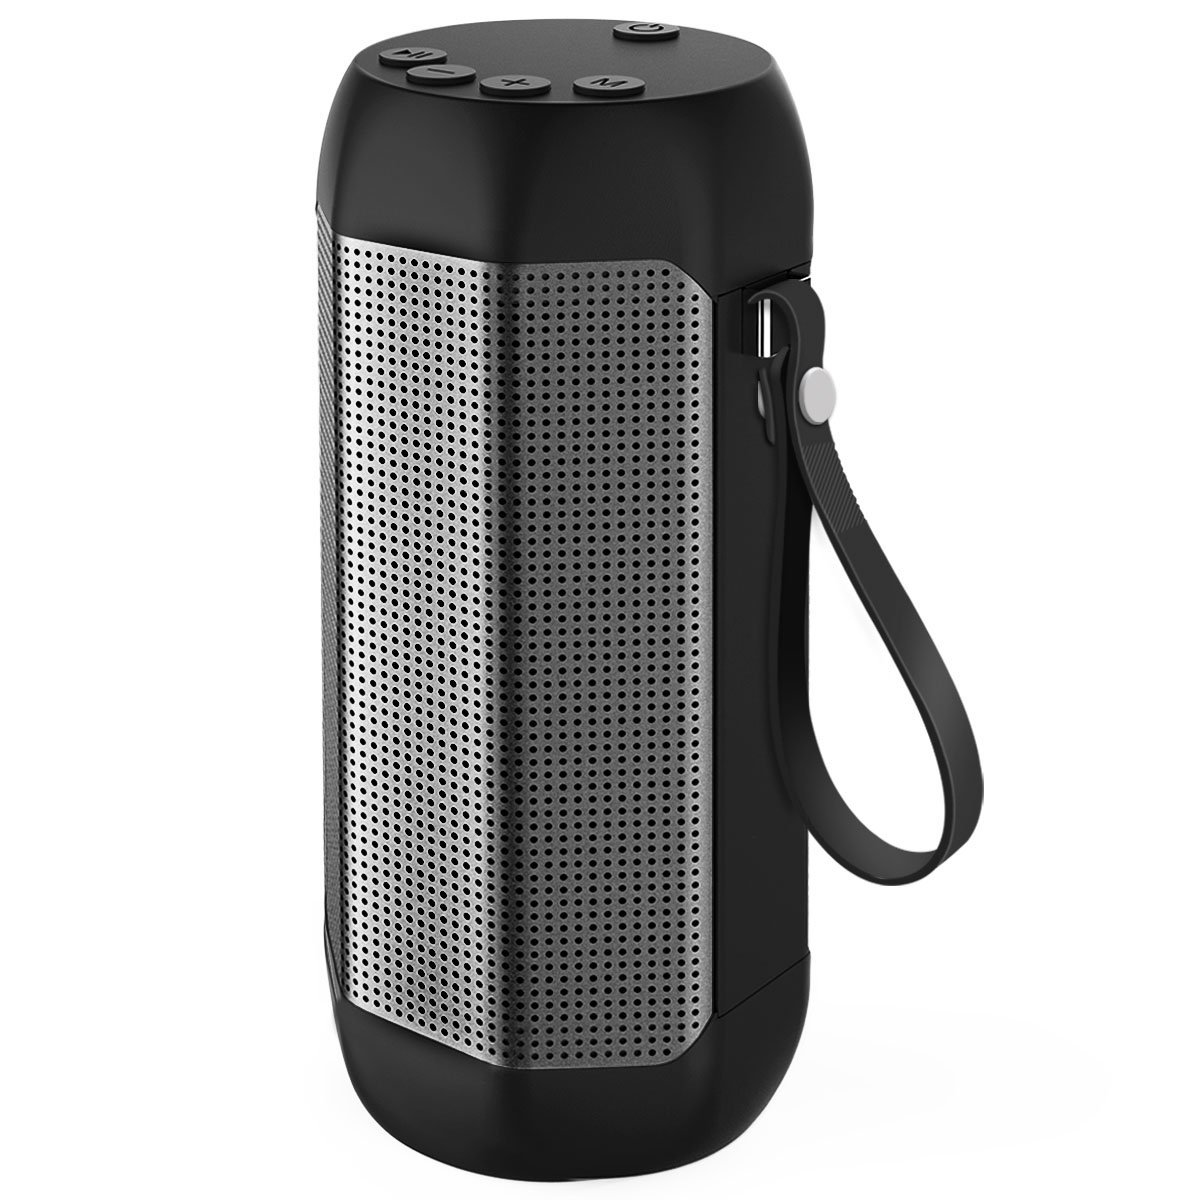 Portable Bluetooth Speaker,Wireless Speaker Outdoor Strong Bass 24 Hours Playing Time with TF Card and FM Radio Black ws 980 car model style portable 2 channel rgb light speaker w fm tf black transparent